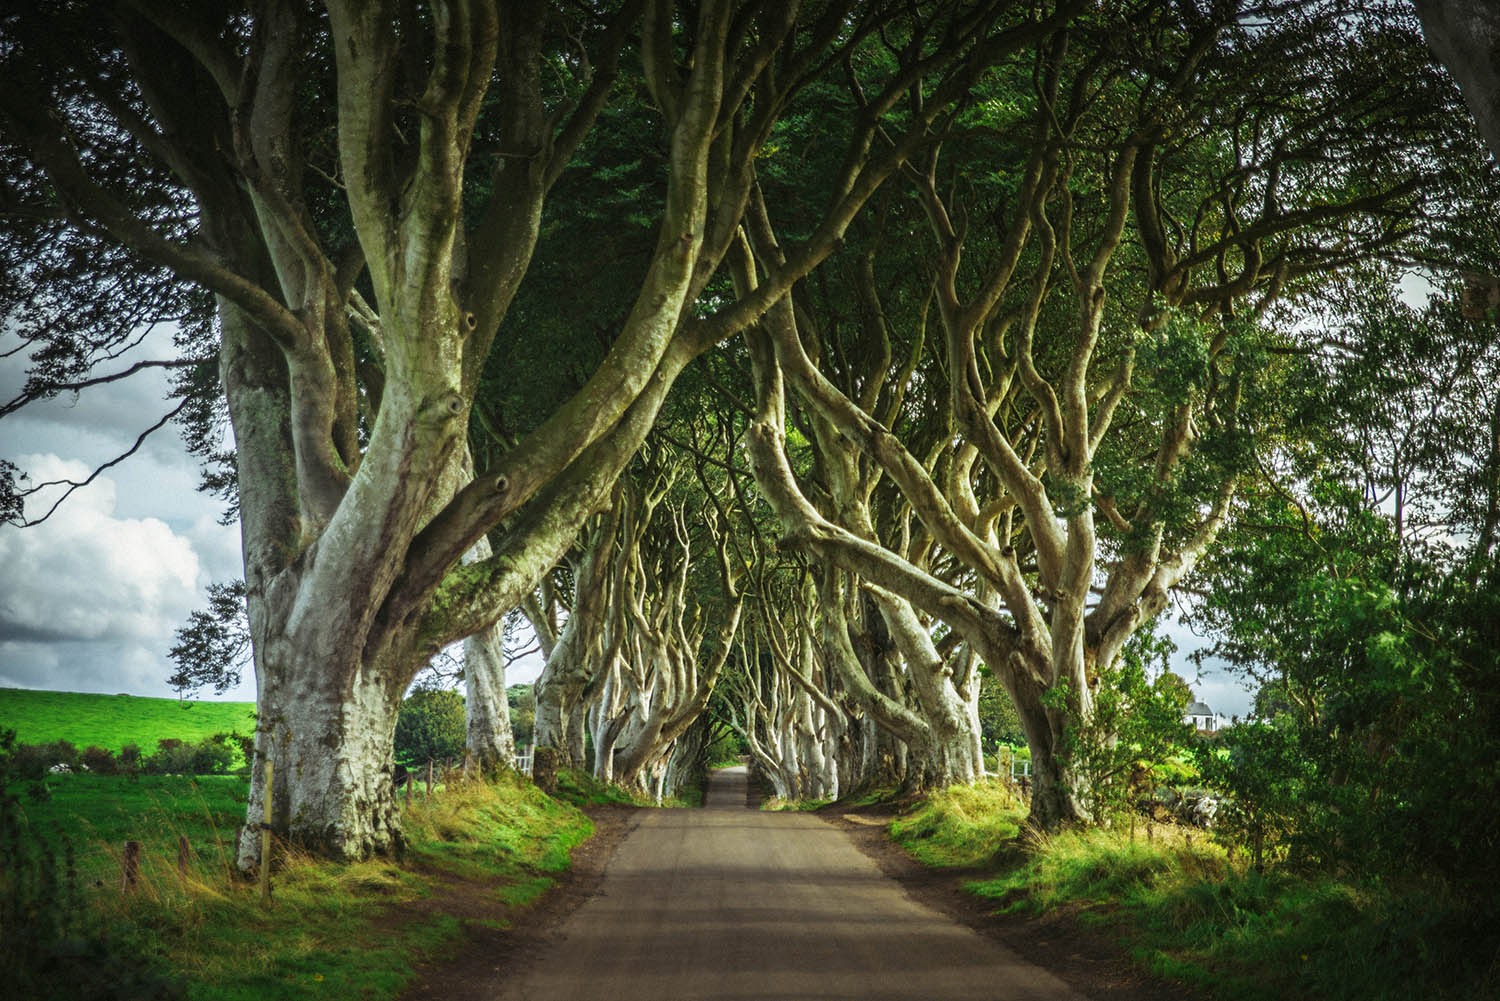 The Dark Hedges in Northern Ireland - A magical place and Game of Thrones filming location